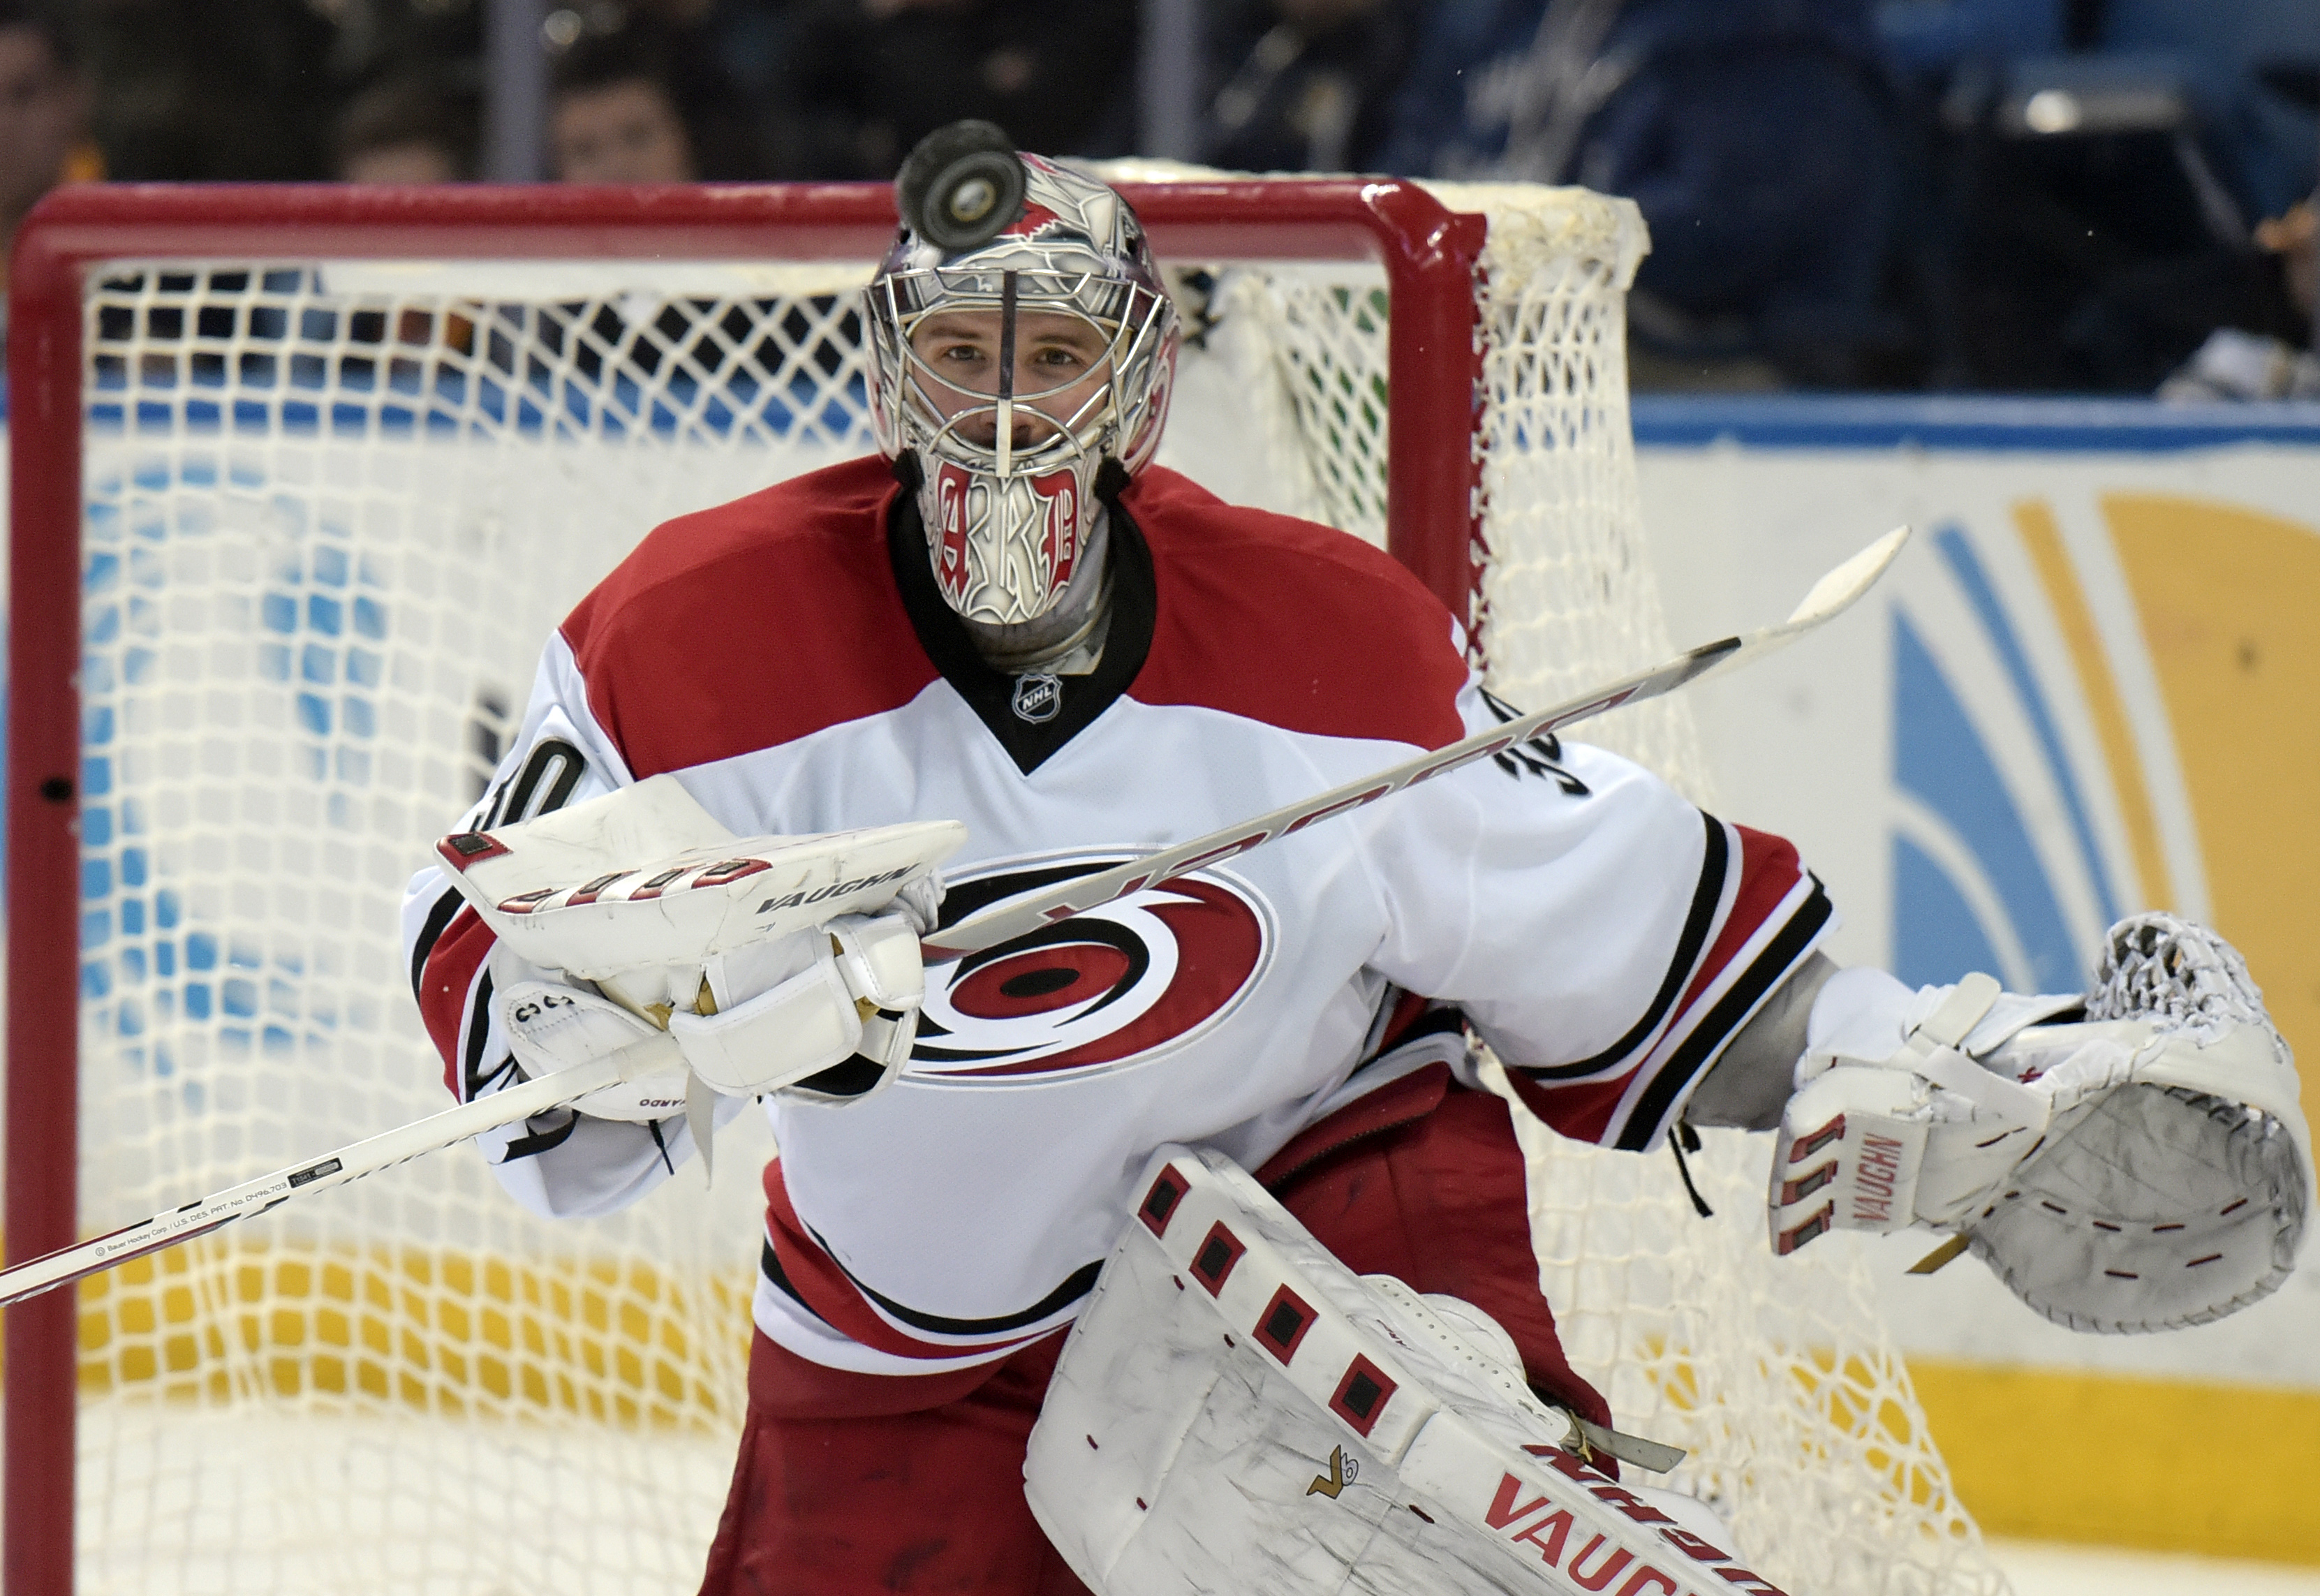 FILE - In this March 12, 2016, file photo, Carolina Hurricanes goaltender Cam Ward keeps his eye on the puck during the third period of an NHL hockey game against the Buffalo Sabres in Buffalo, N.Y. The Hurricanes announced Thursday, June 16, 2016, that t